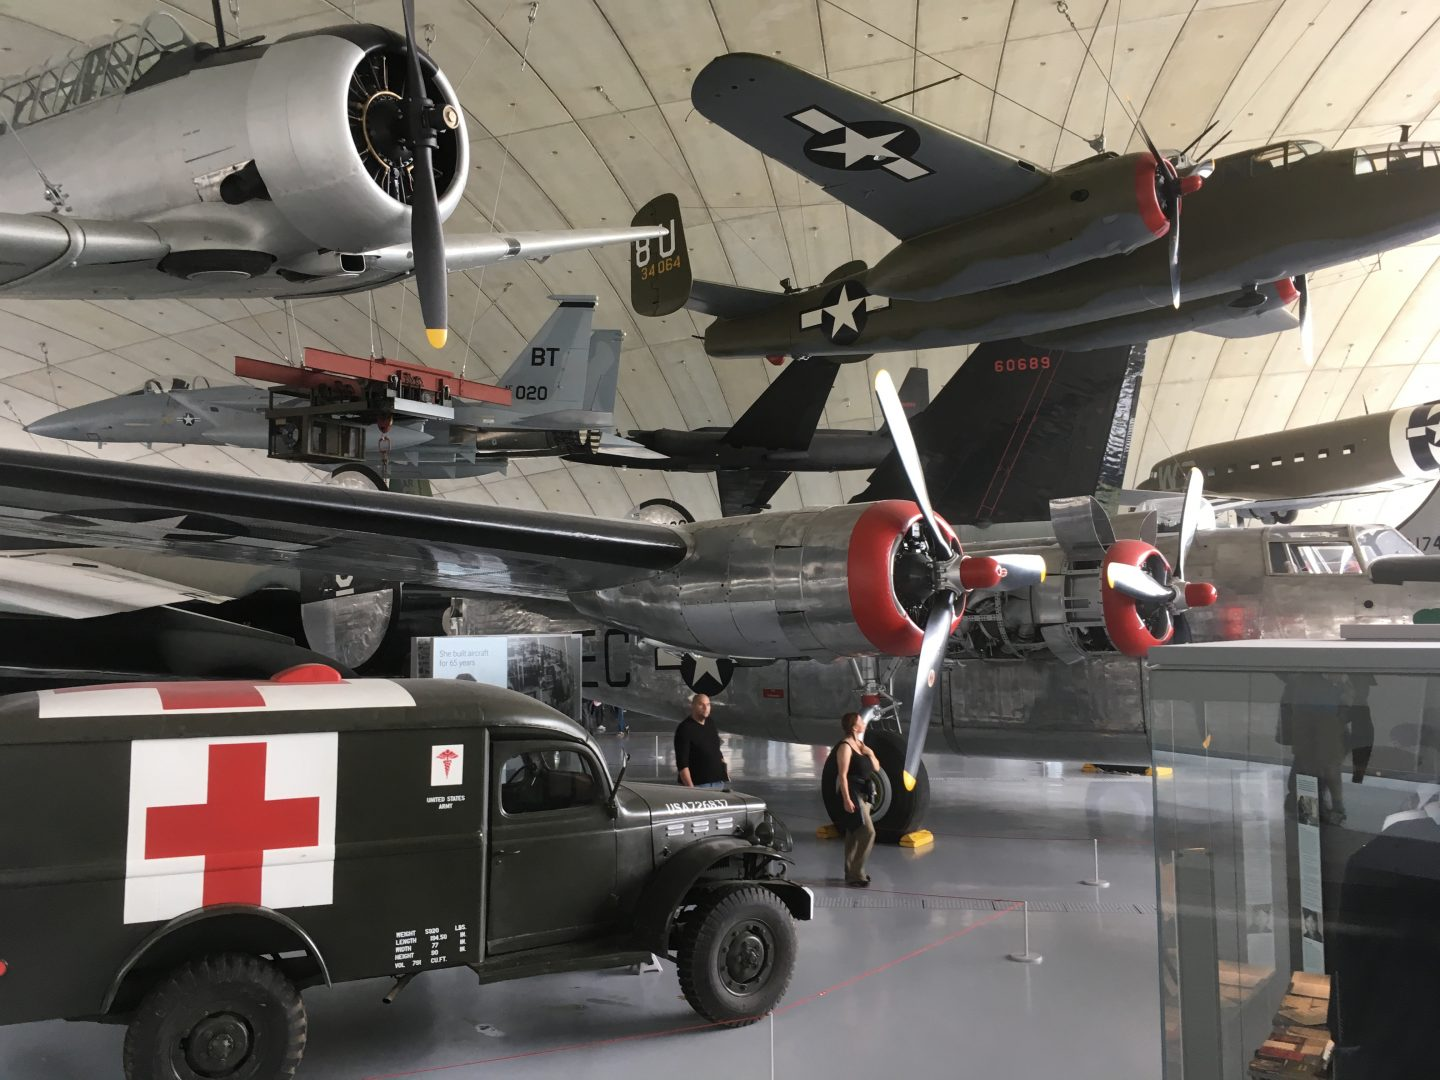 Duxford Imperial War Museum, near the M11